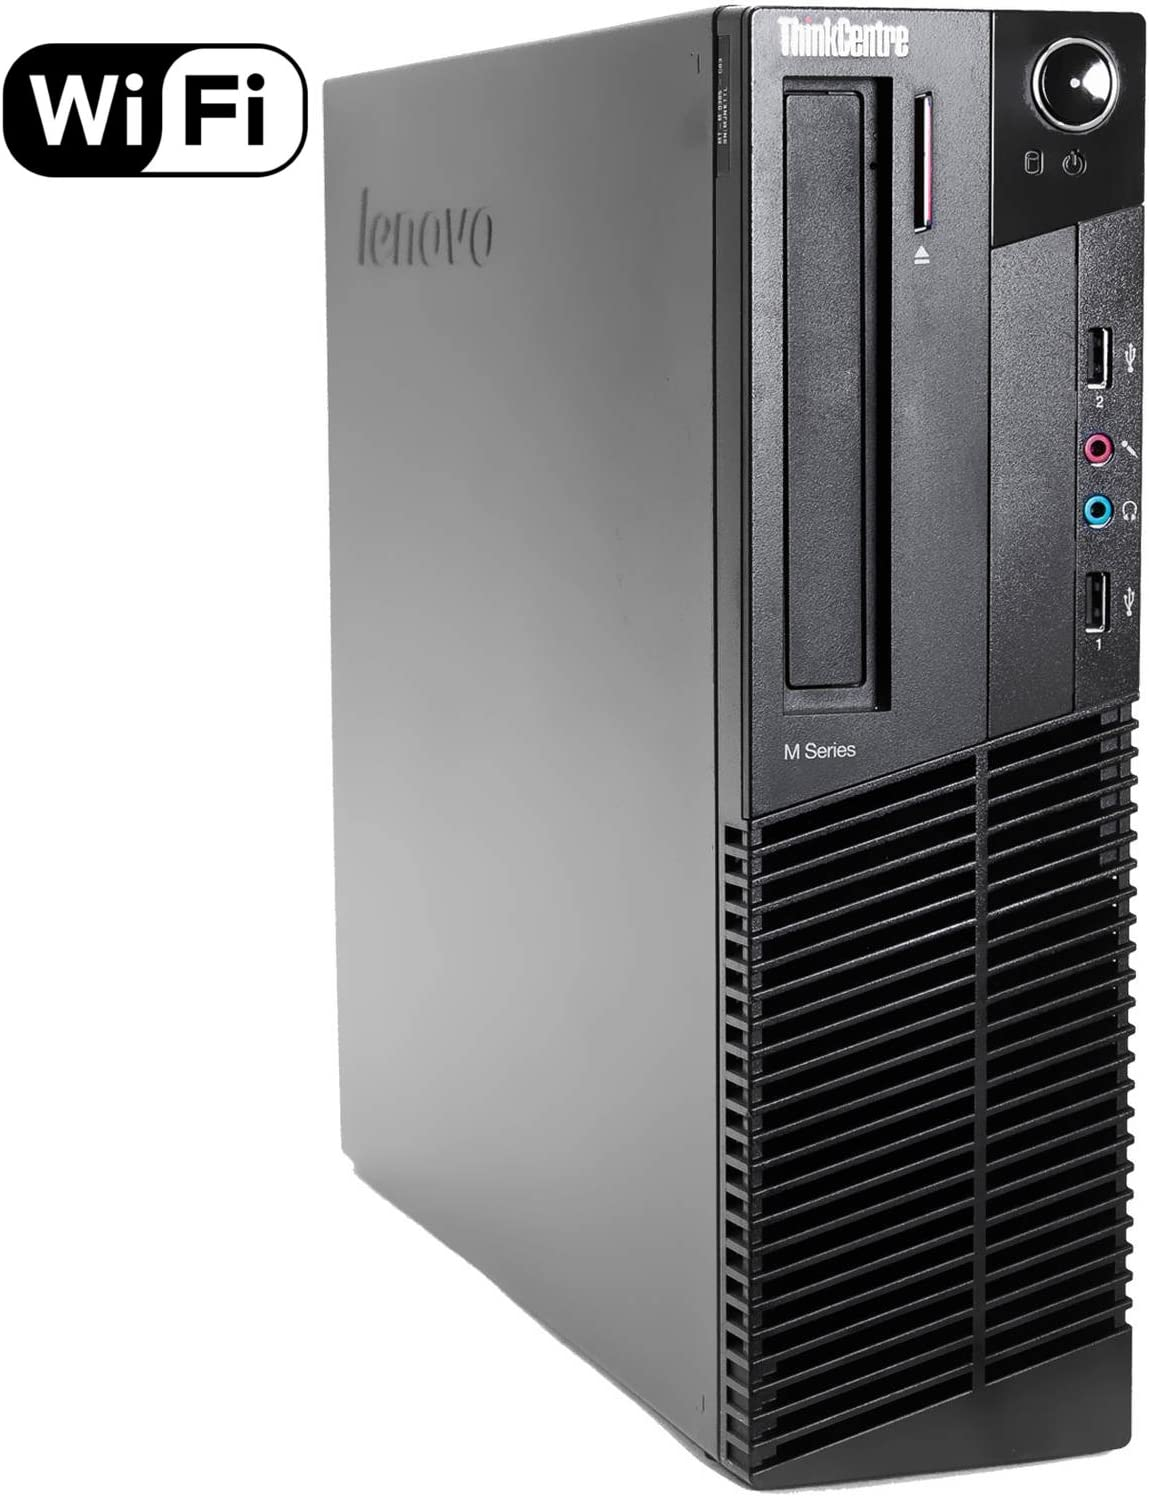 Lenovo ThinkCentre M93p SFF Pro Business Desktop Computer, Intel Quad Core i5-4570 up to 3.6GHz, 8GB RAM, 128GB SSD, USB 3.0, VGA, Gigabit Ethernet, Windows 10 Professional (Renewed)